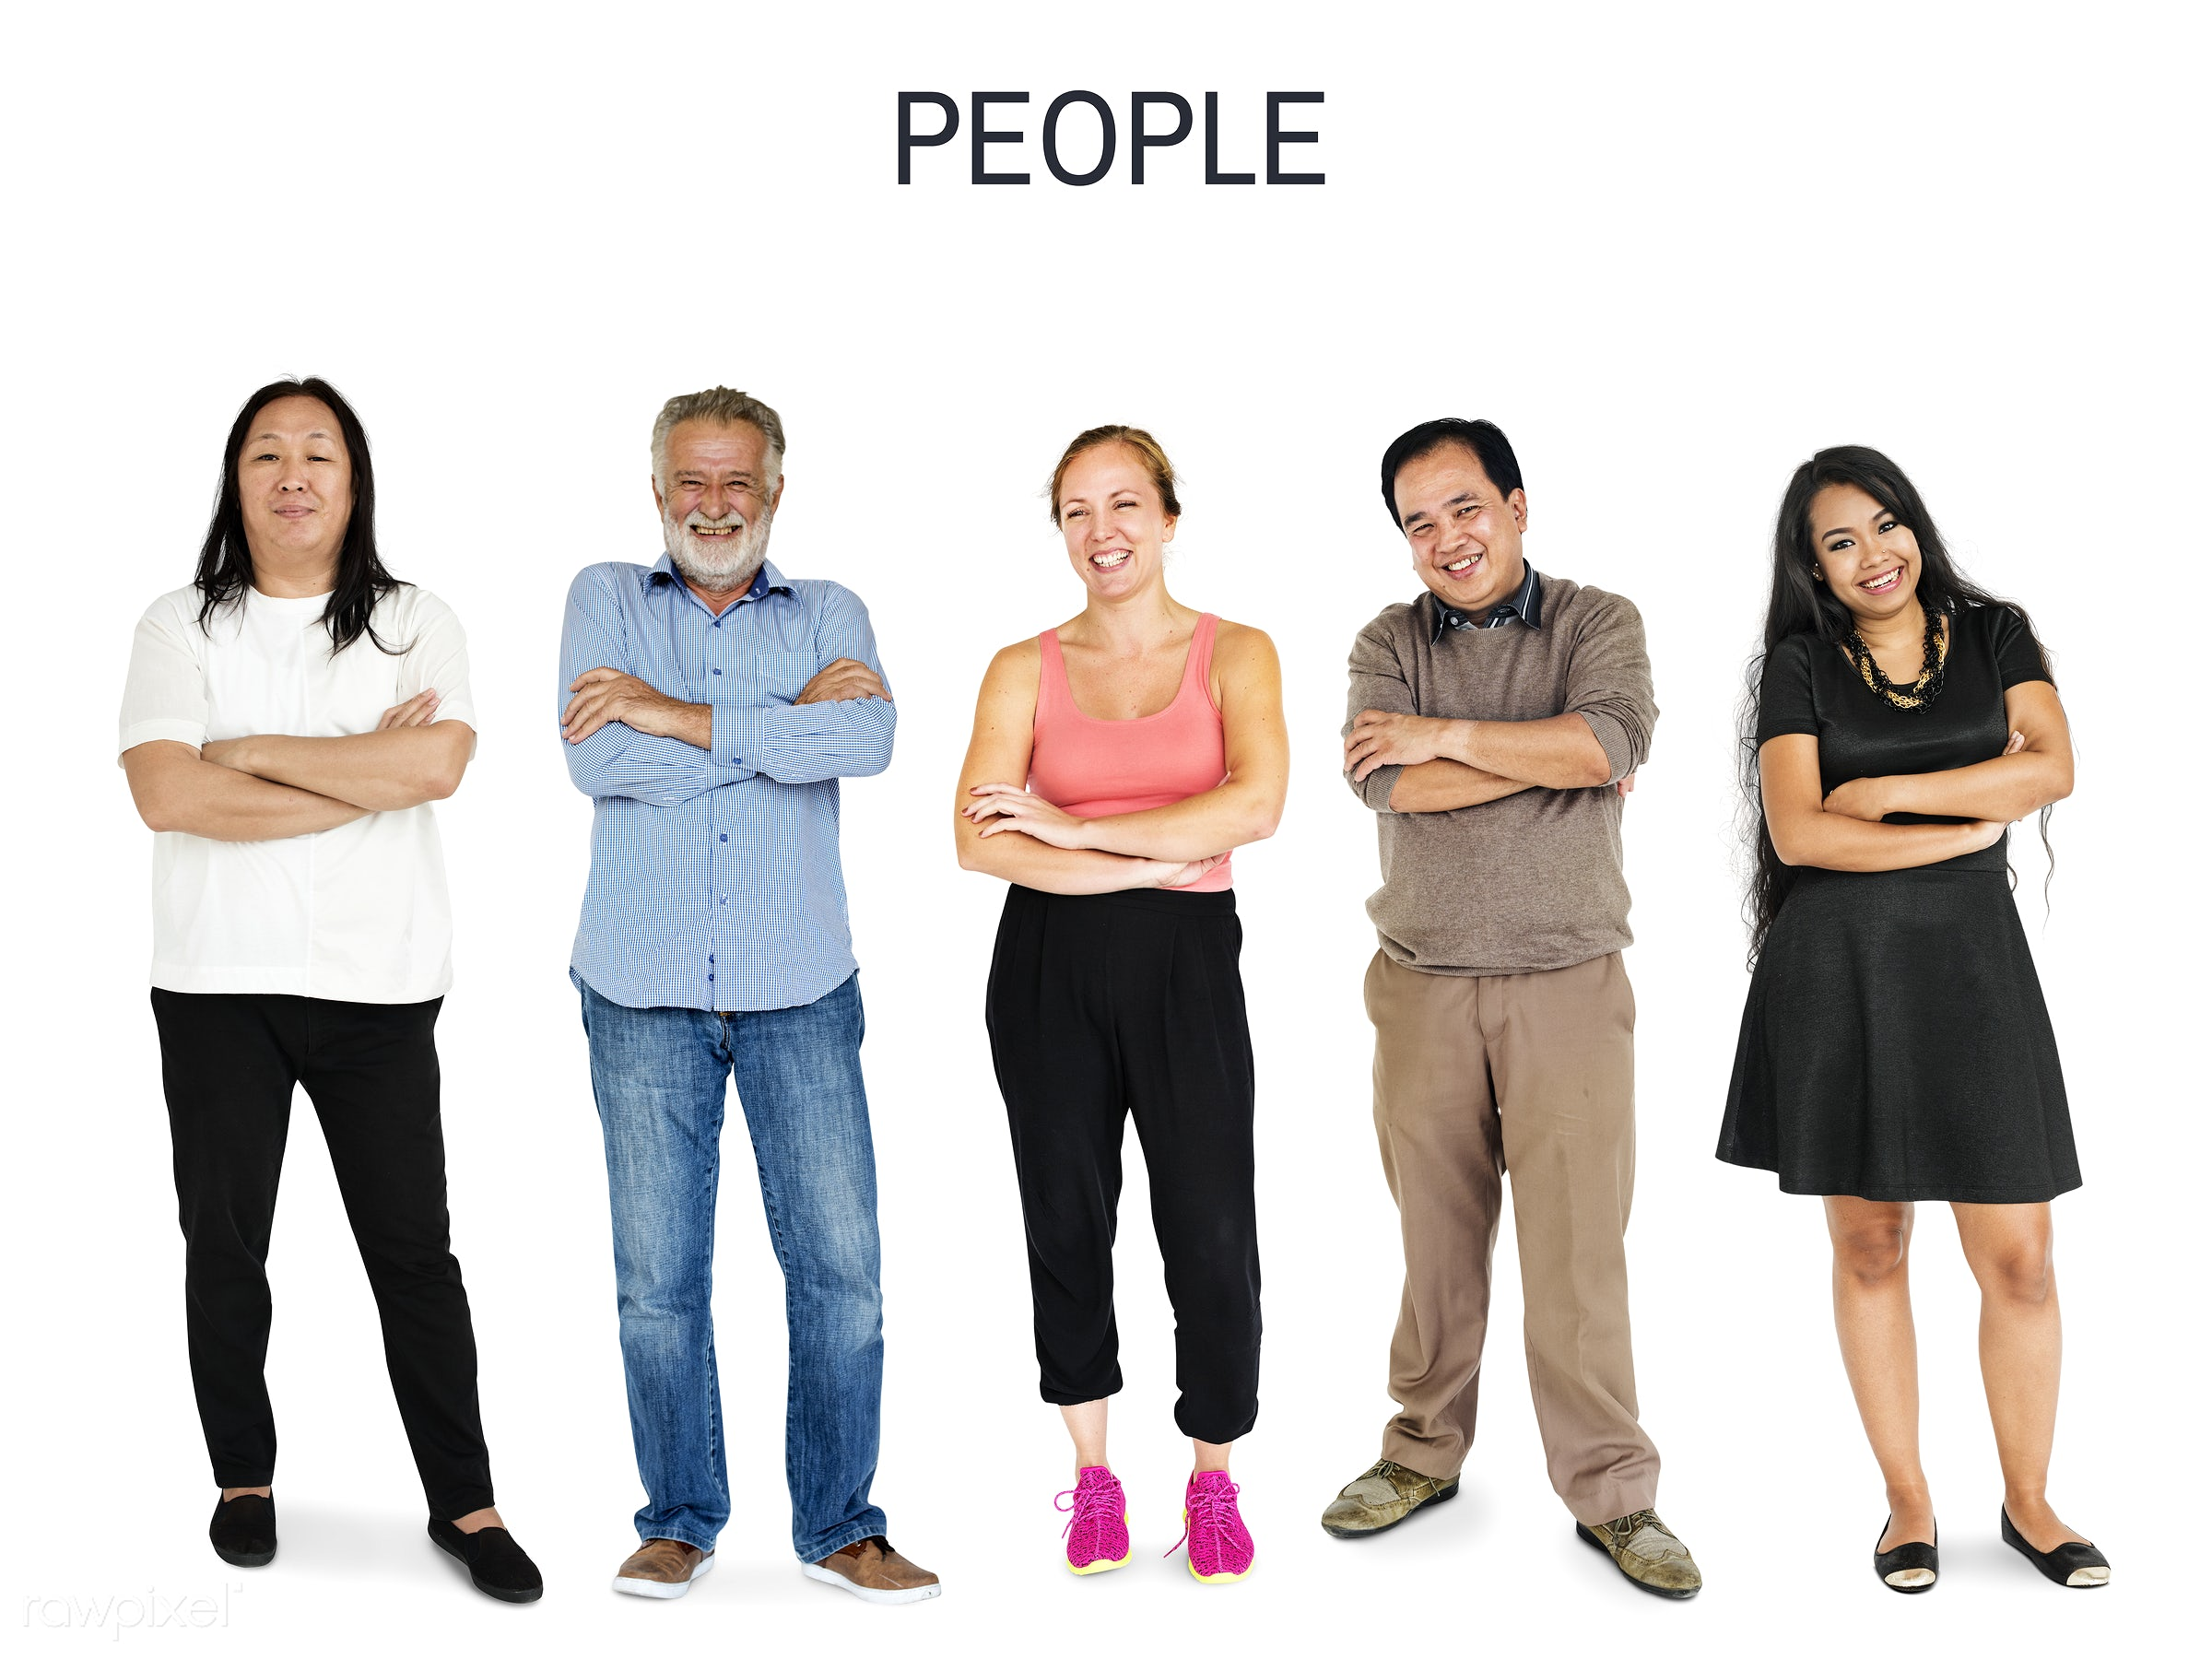 Diverse people set - gentlemen, studio, person, diverse, set, people, attraction, together, asian, caucasian, life, woman,...